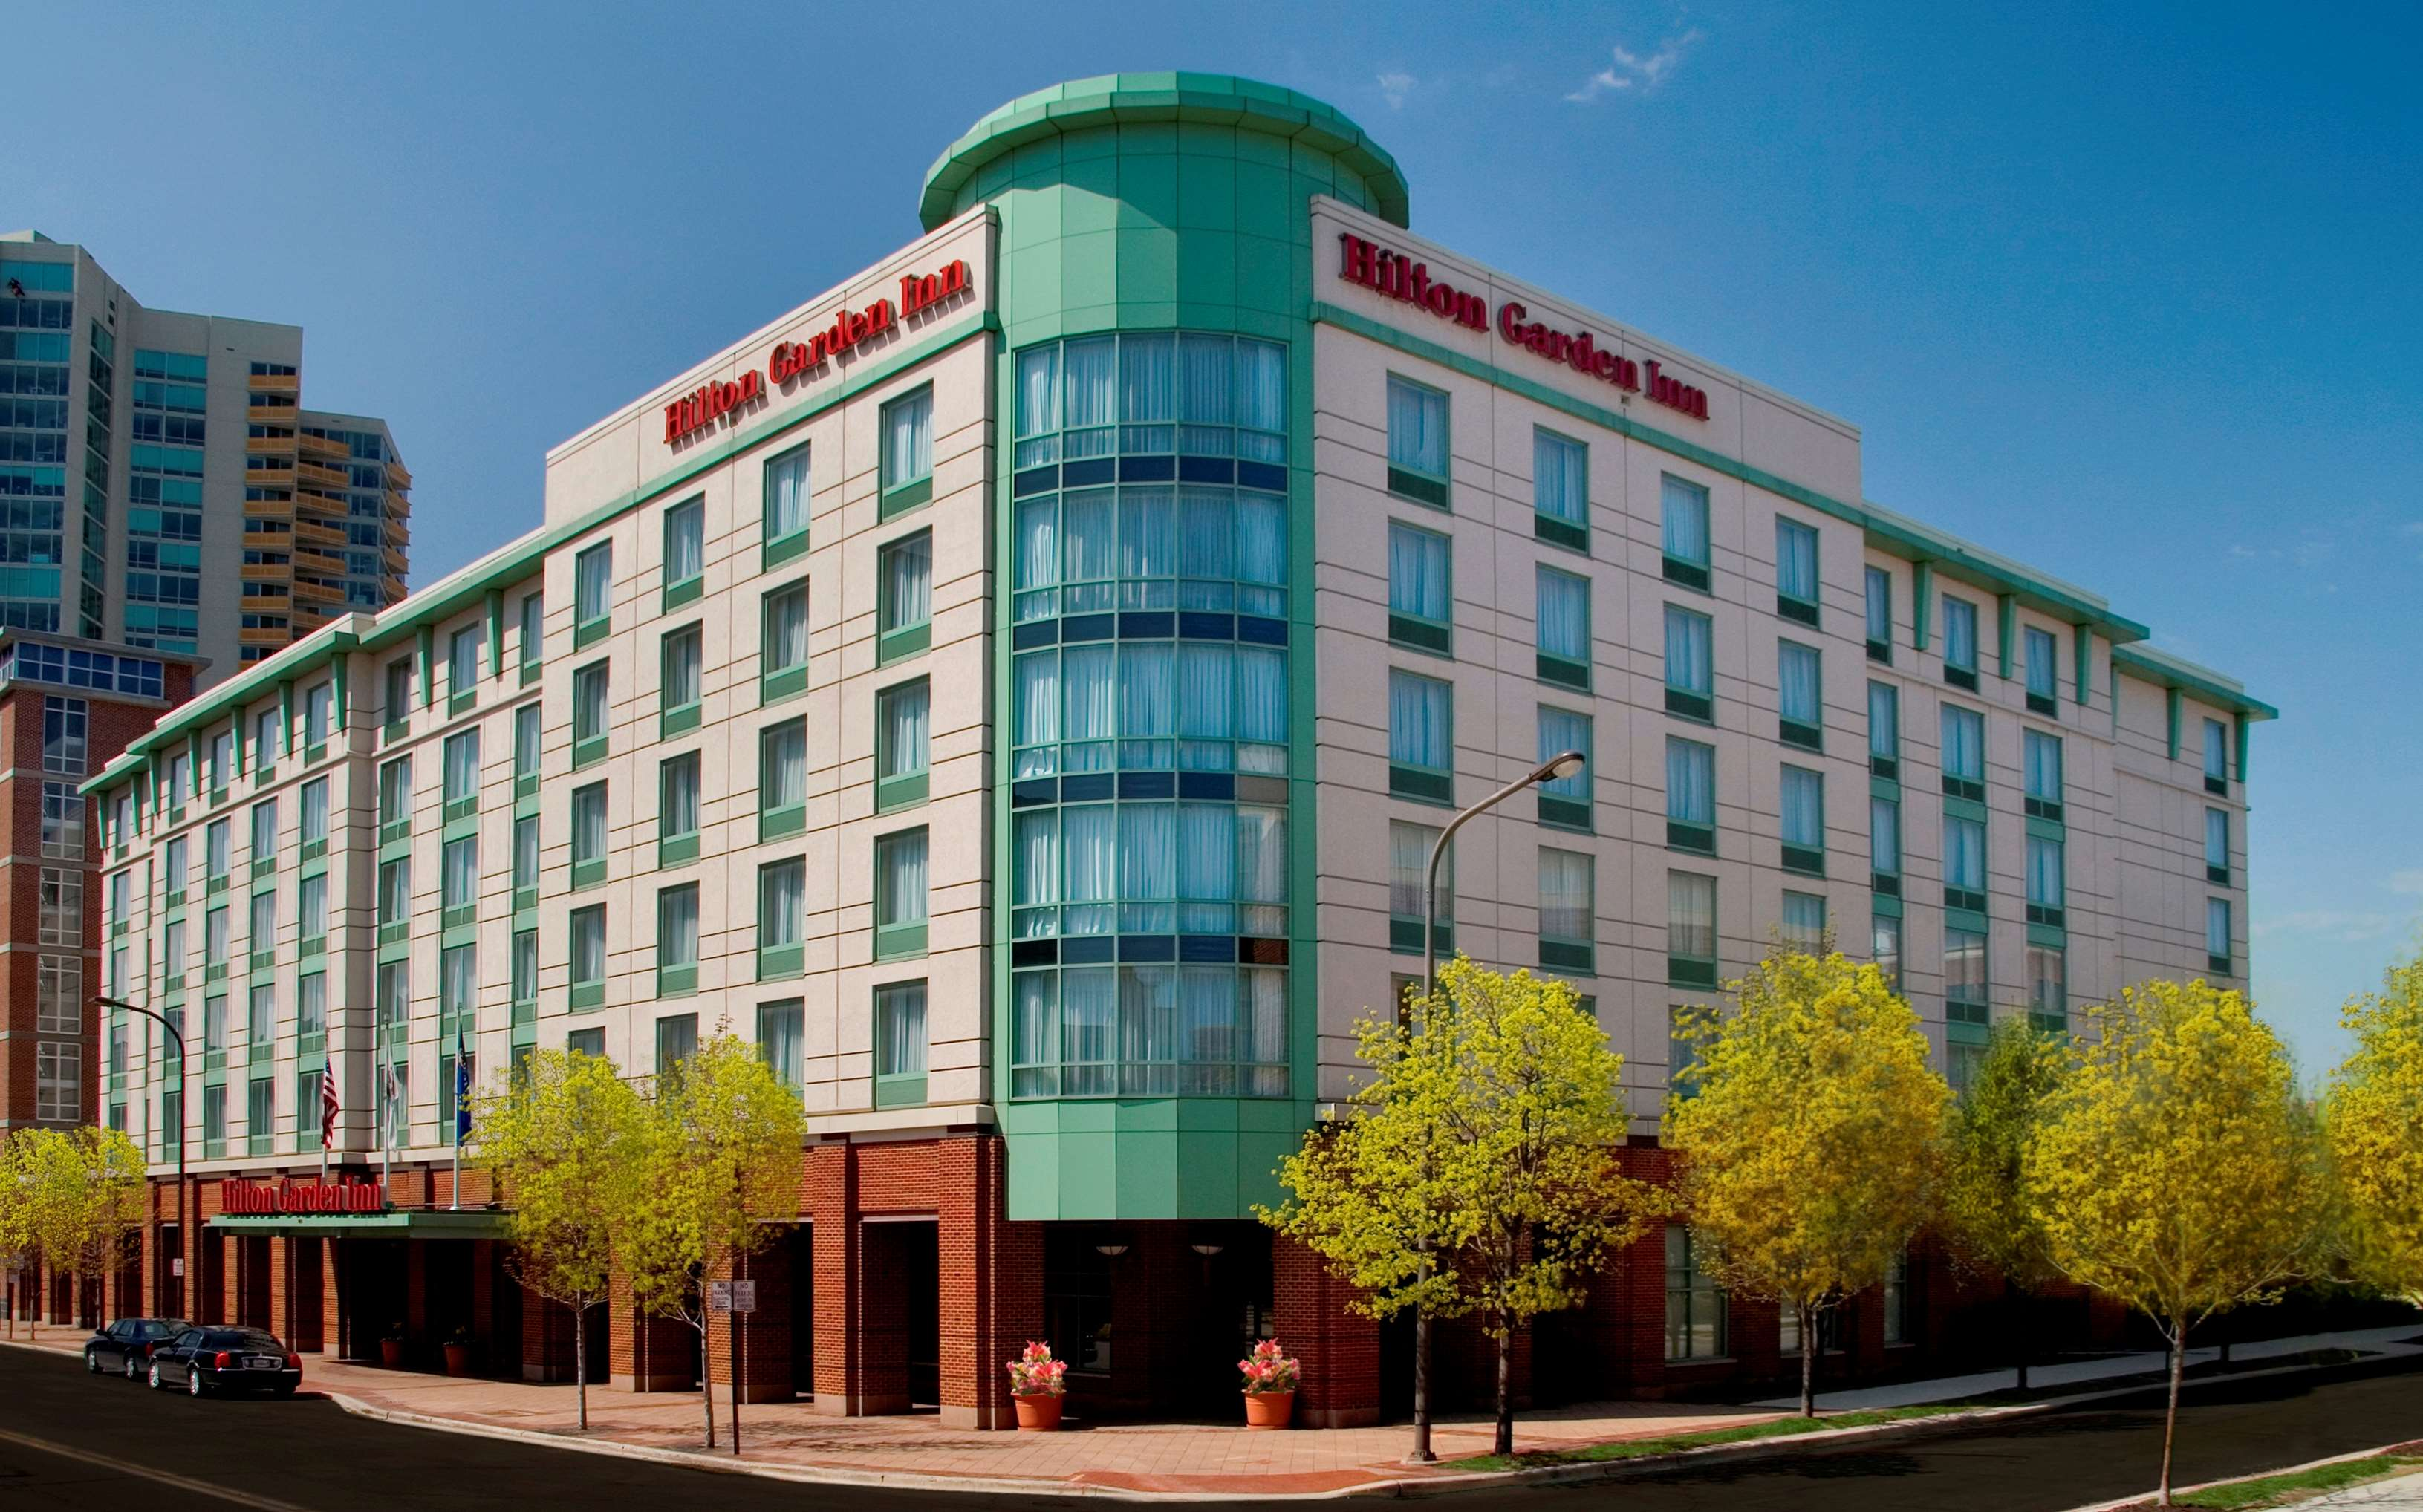 Hilton garden inn chicago north shore evanston 1818 maple - Hilton garden inn grand ave chicago ...